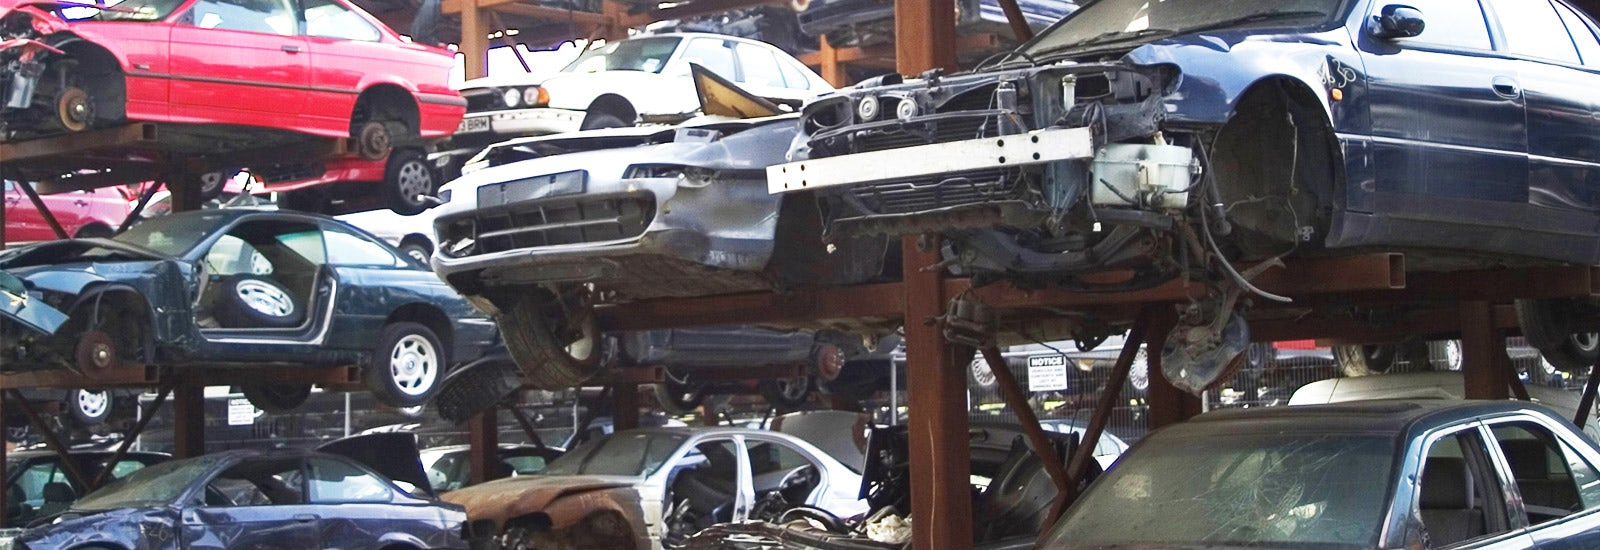 Pretty Sell Cars For Scrap Metal Photos - Classic Cars Ideas ...